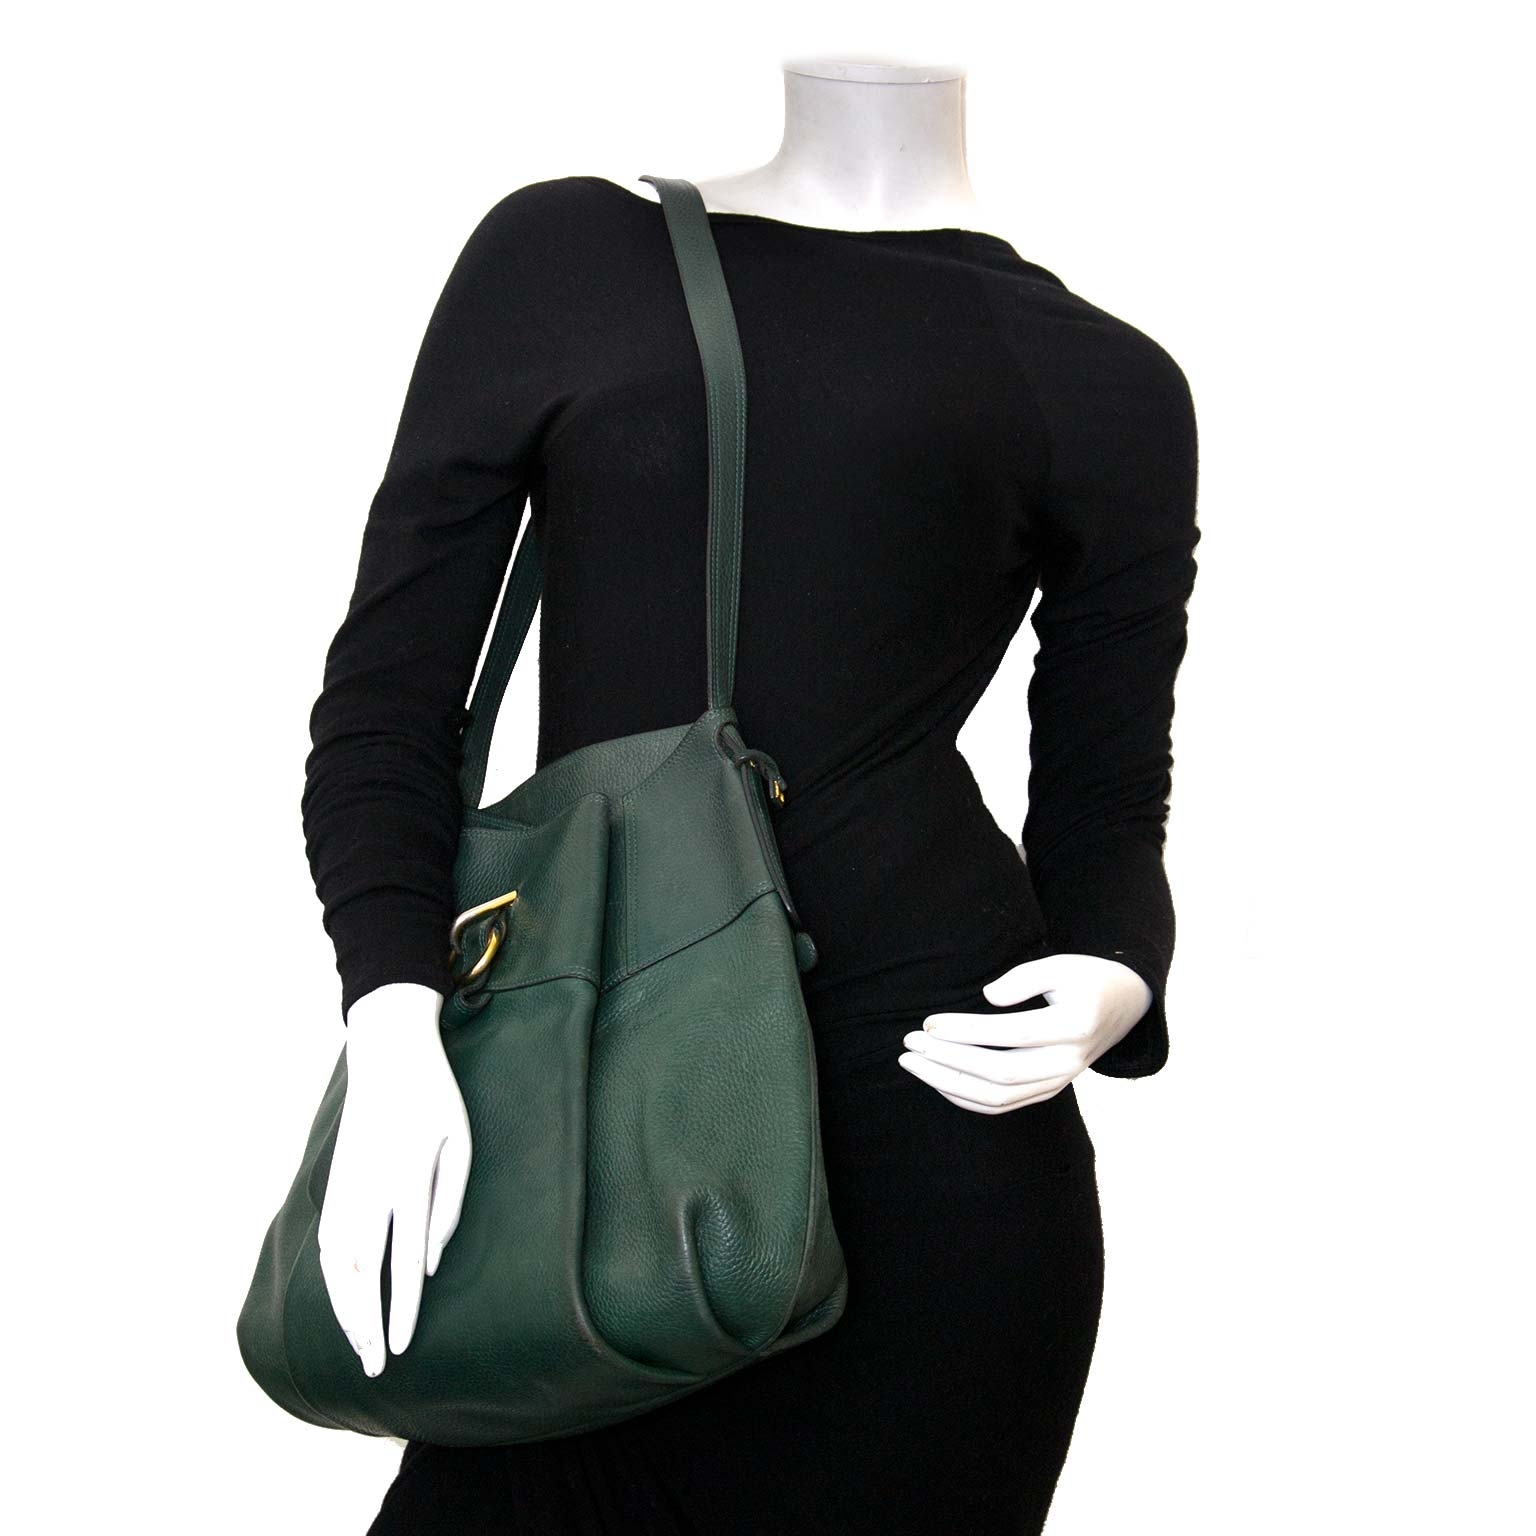 delvaux green leather faust bag now for sale at labellov vintage fashion webshop belgium